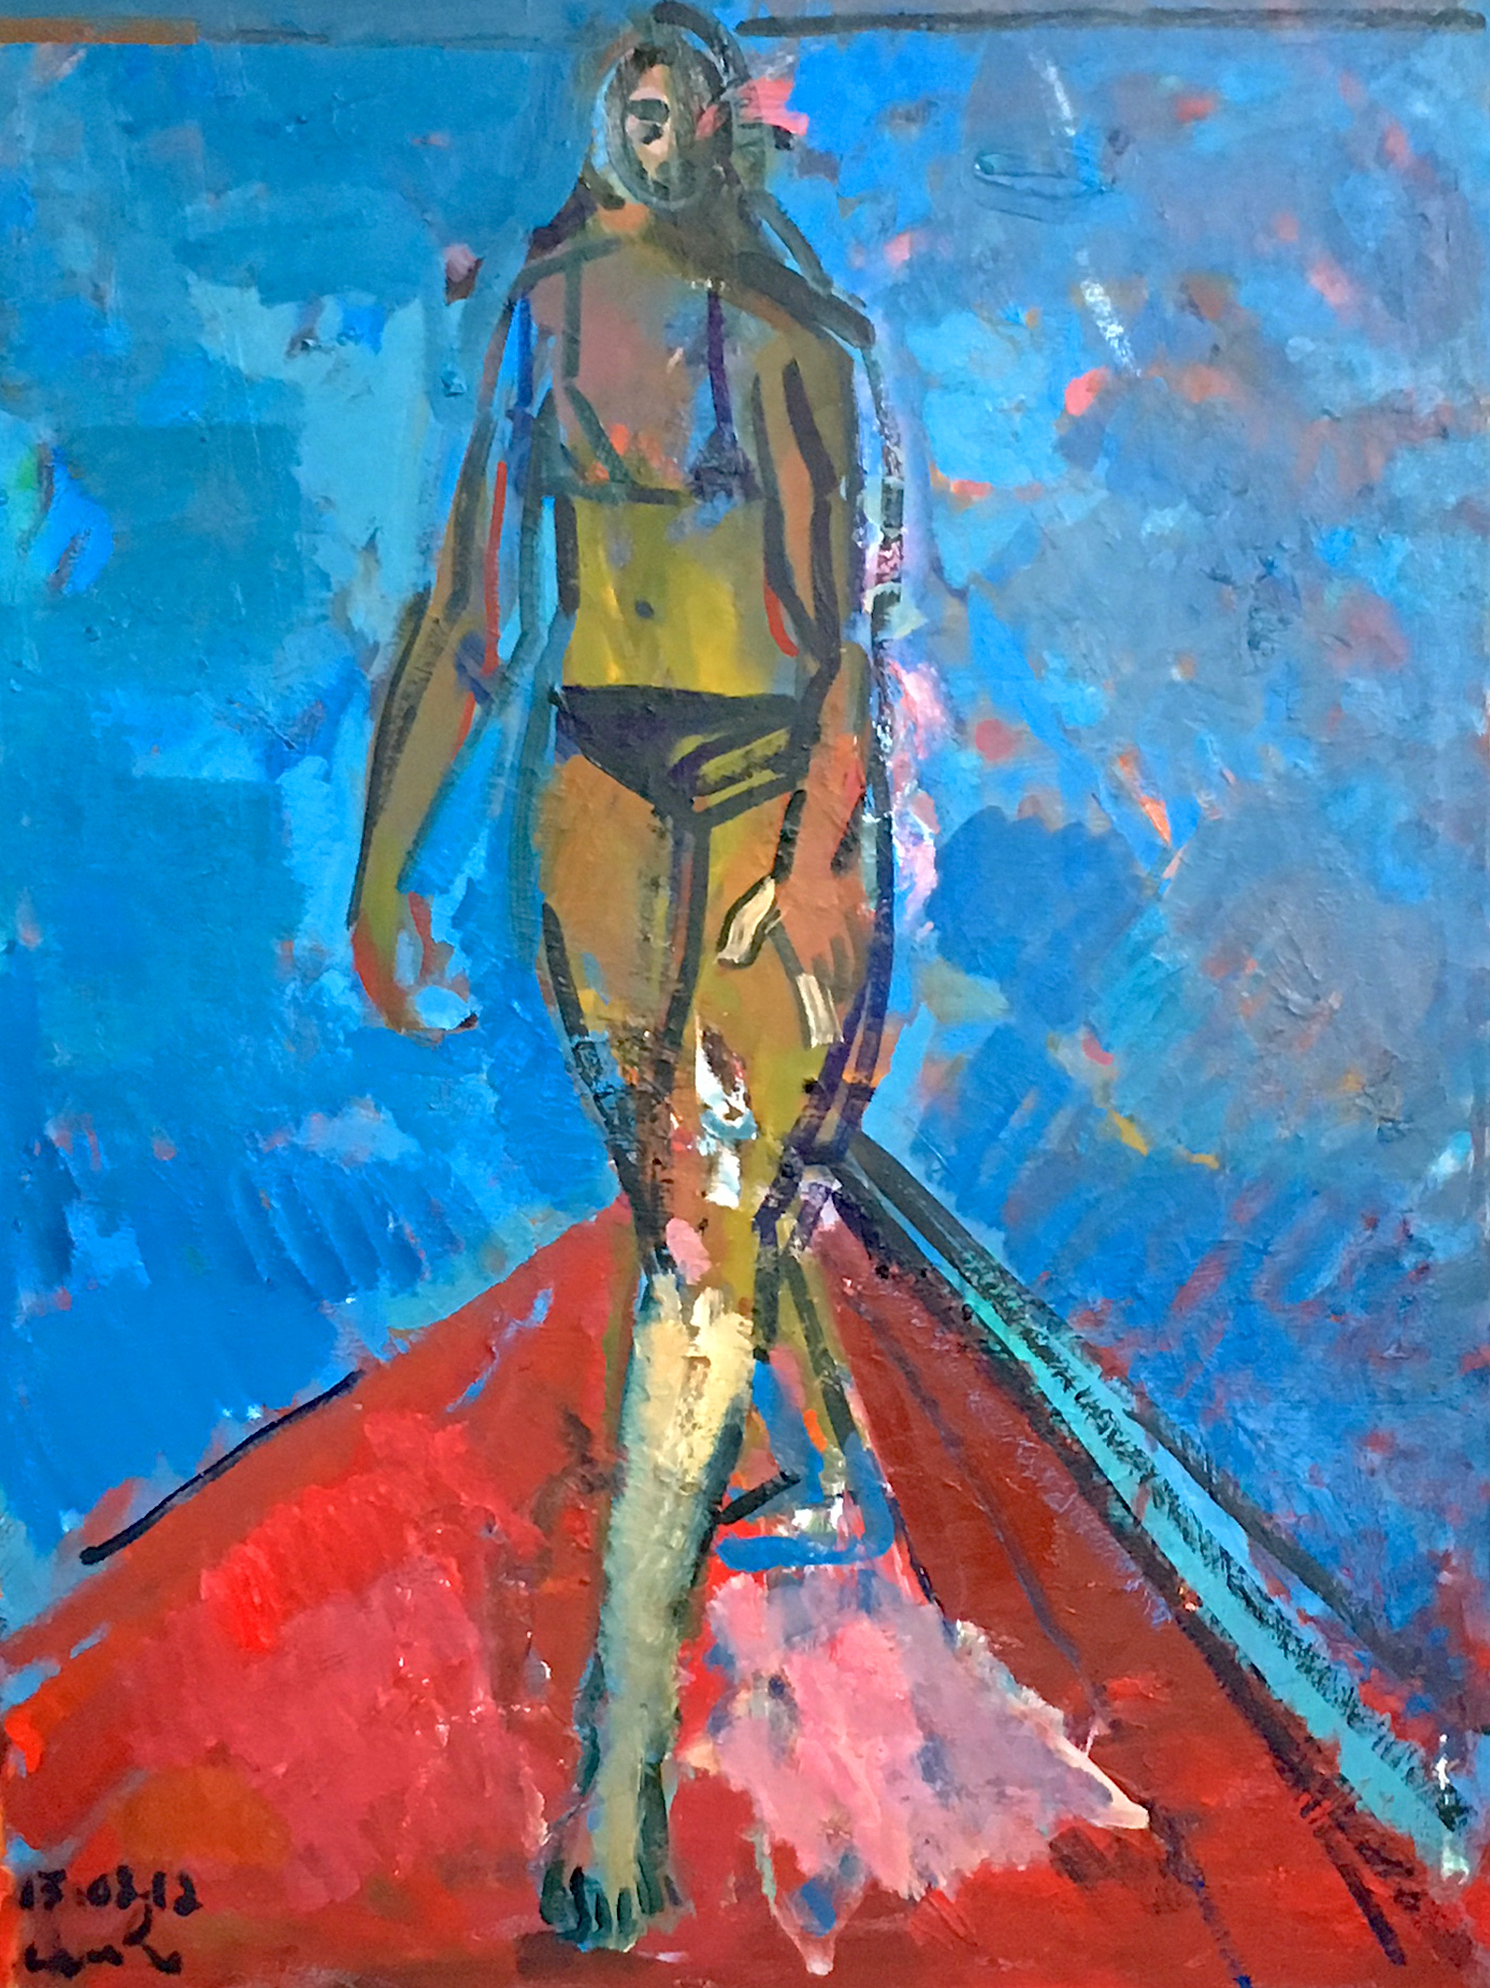 Title: Bather  Size: 123 x 93 cm  Medium: Oil on canvas  Price: £2750